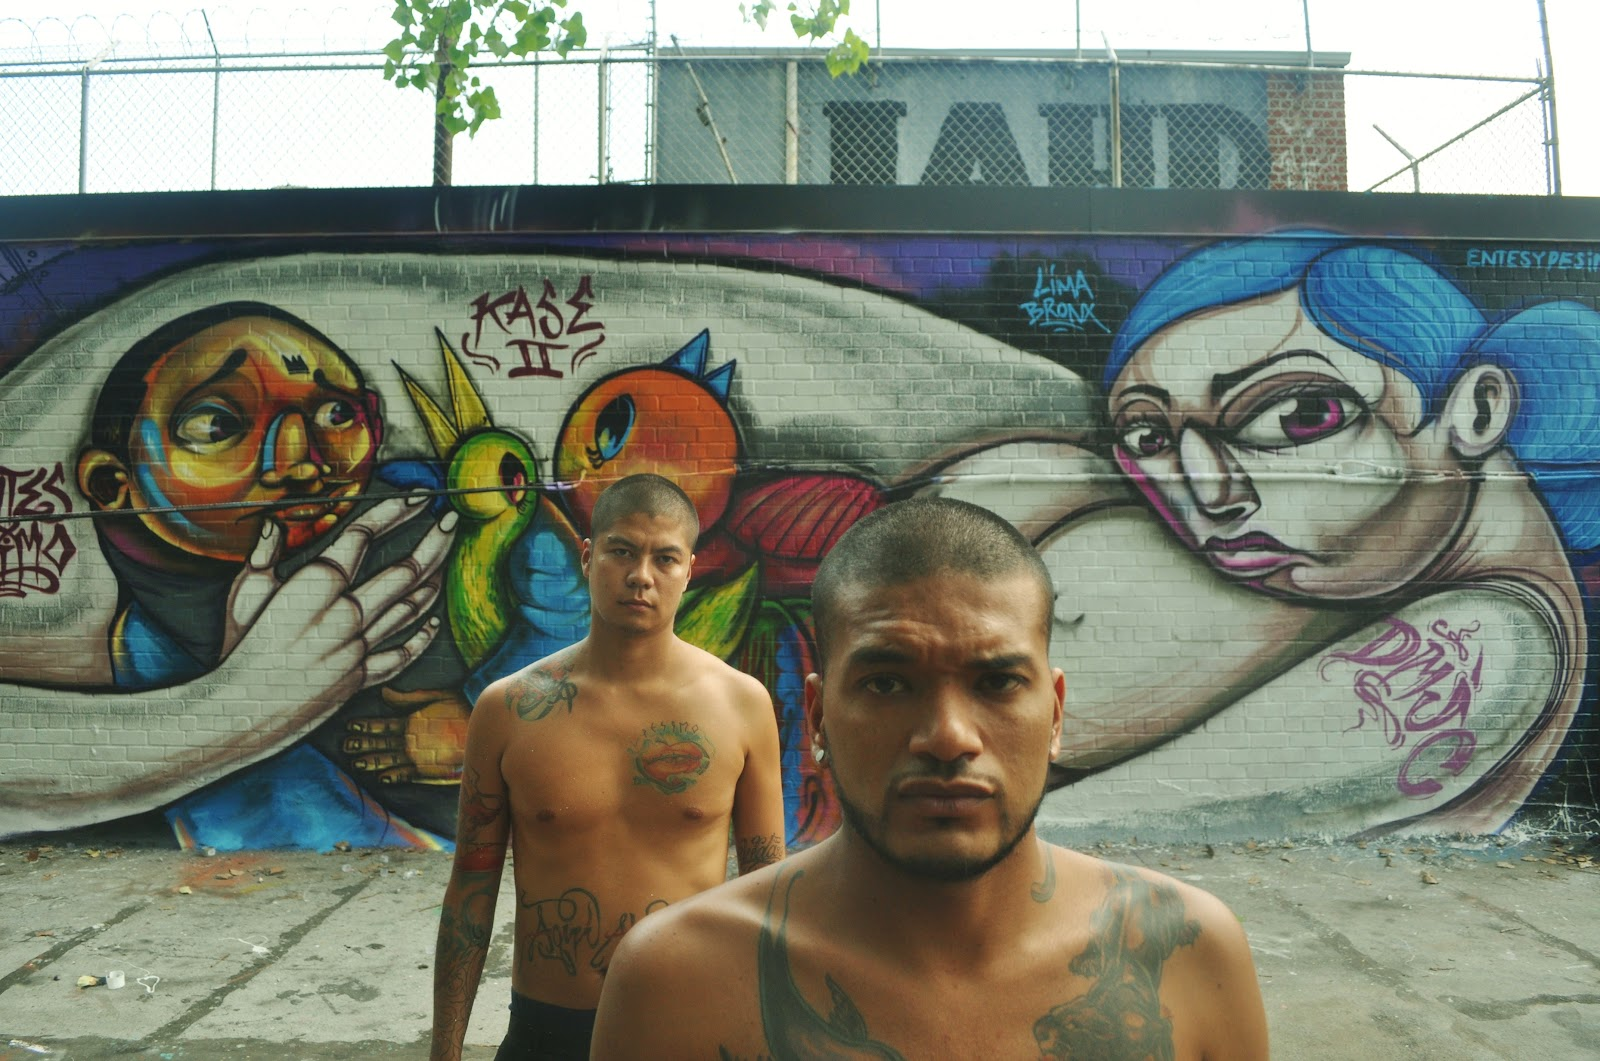 TRAILER: This Documentary Takes You to Peru's Massive Gathering of Latin American Street Artists